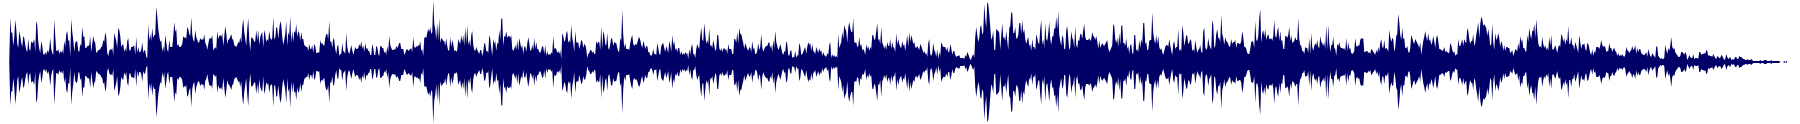 waveform of track #60065